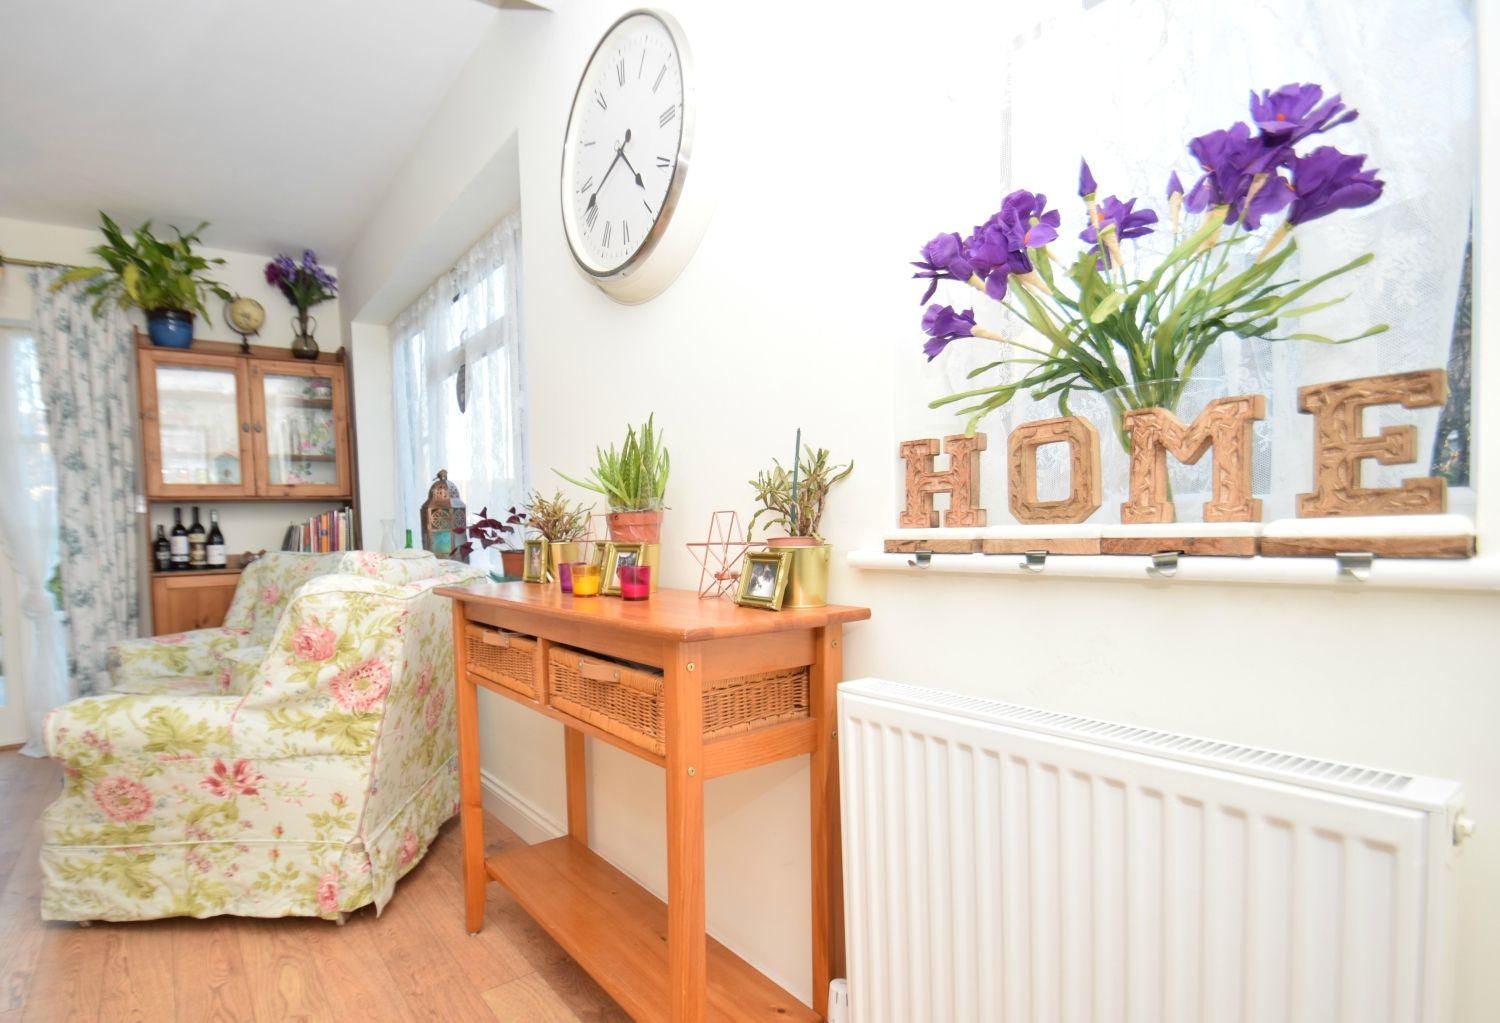 4 bed semi-detached for sale in Upland Grove, Bromsgrove, B61  - Property Image 11